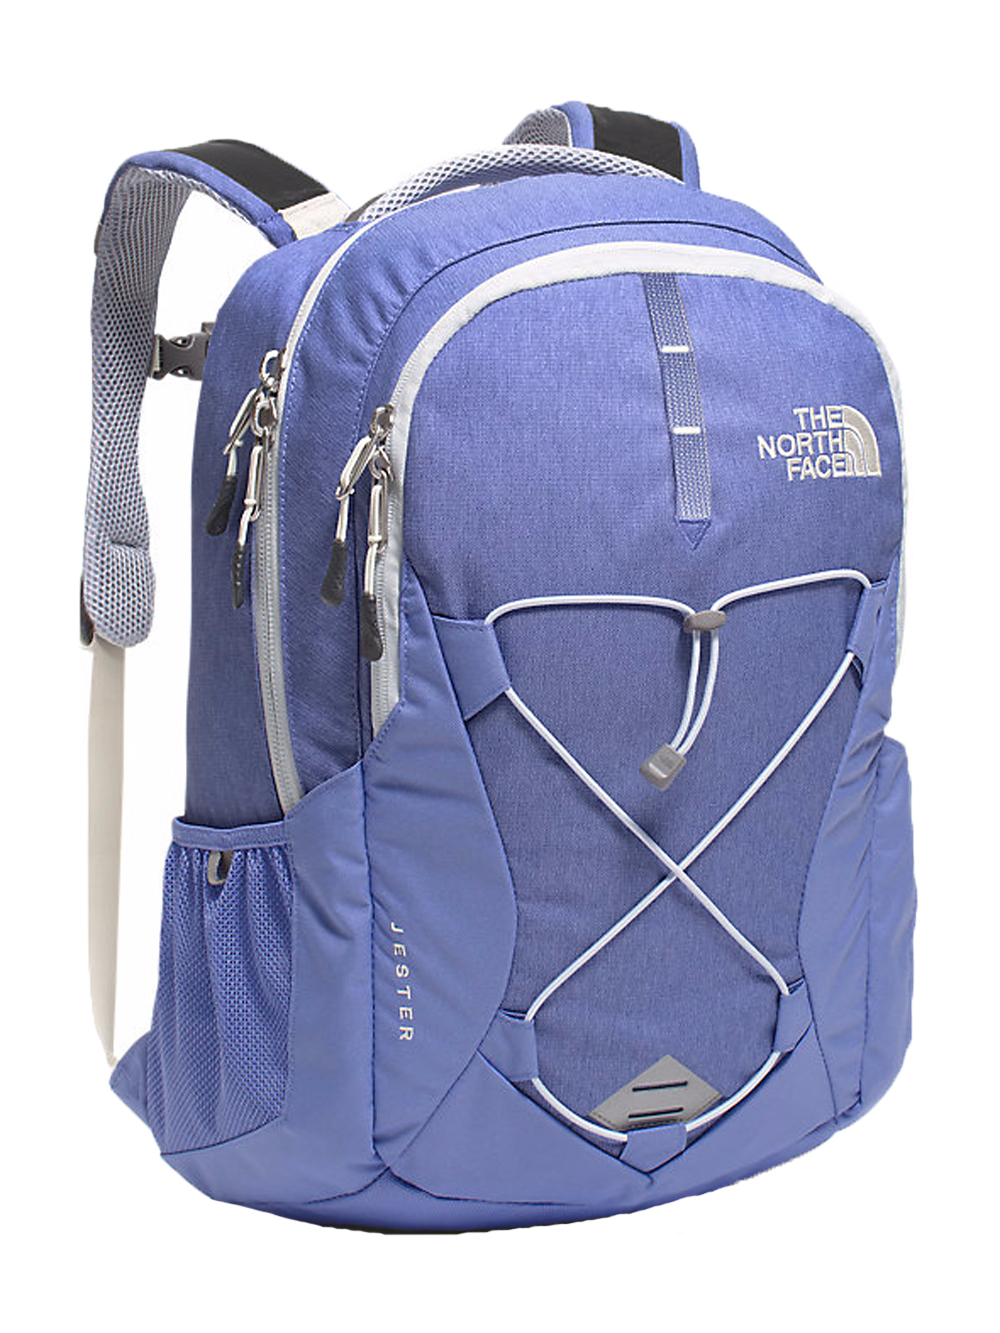 The North Face Jester Backpack - Women's - stellar blue heather/arctic ice blue, one size